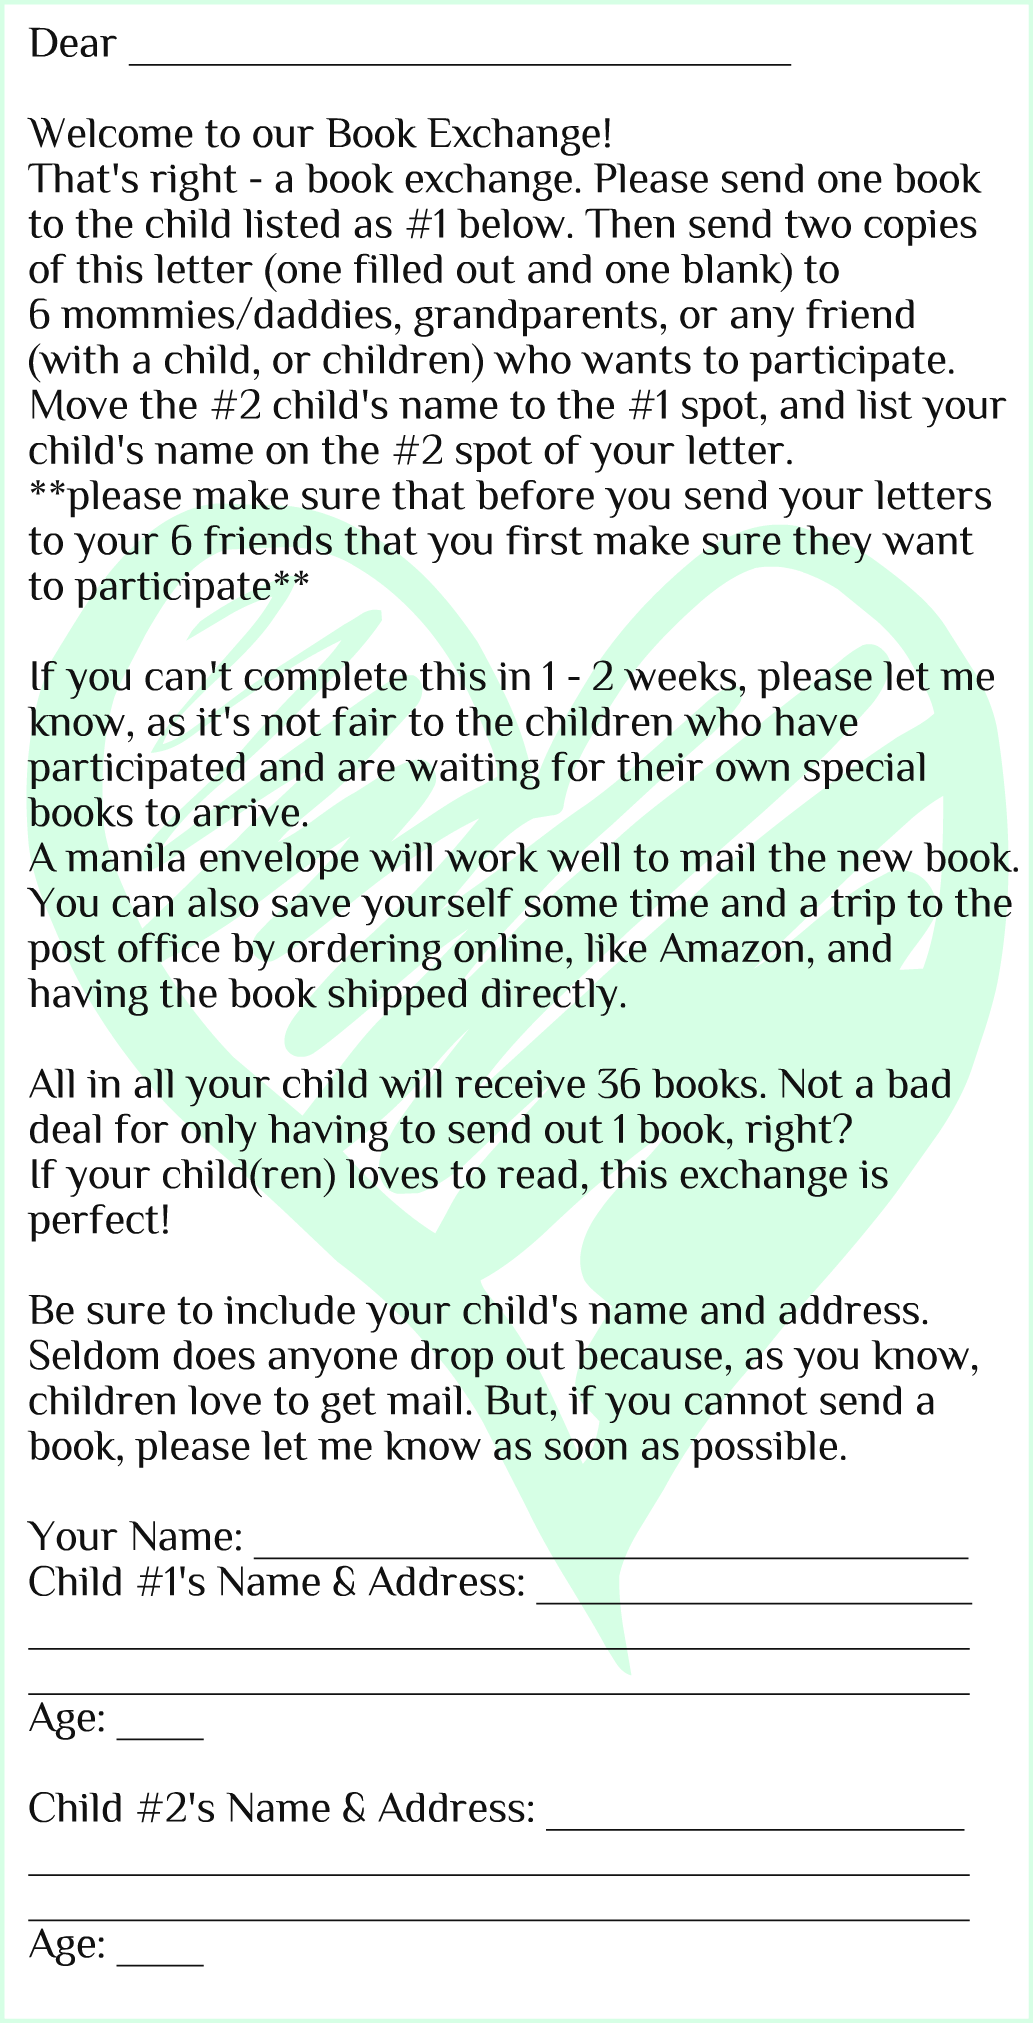 start a book exchange with family and friends template letter